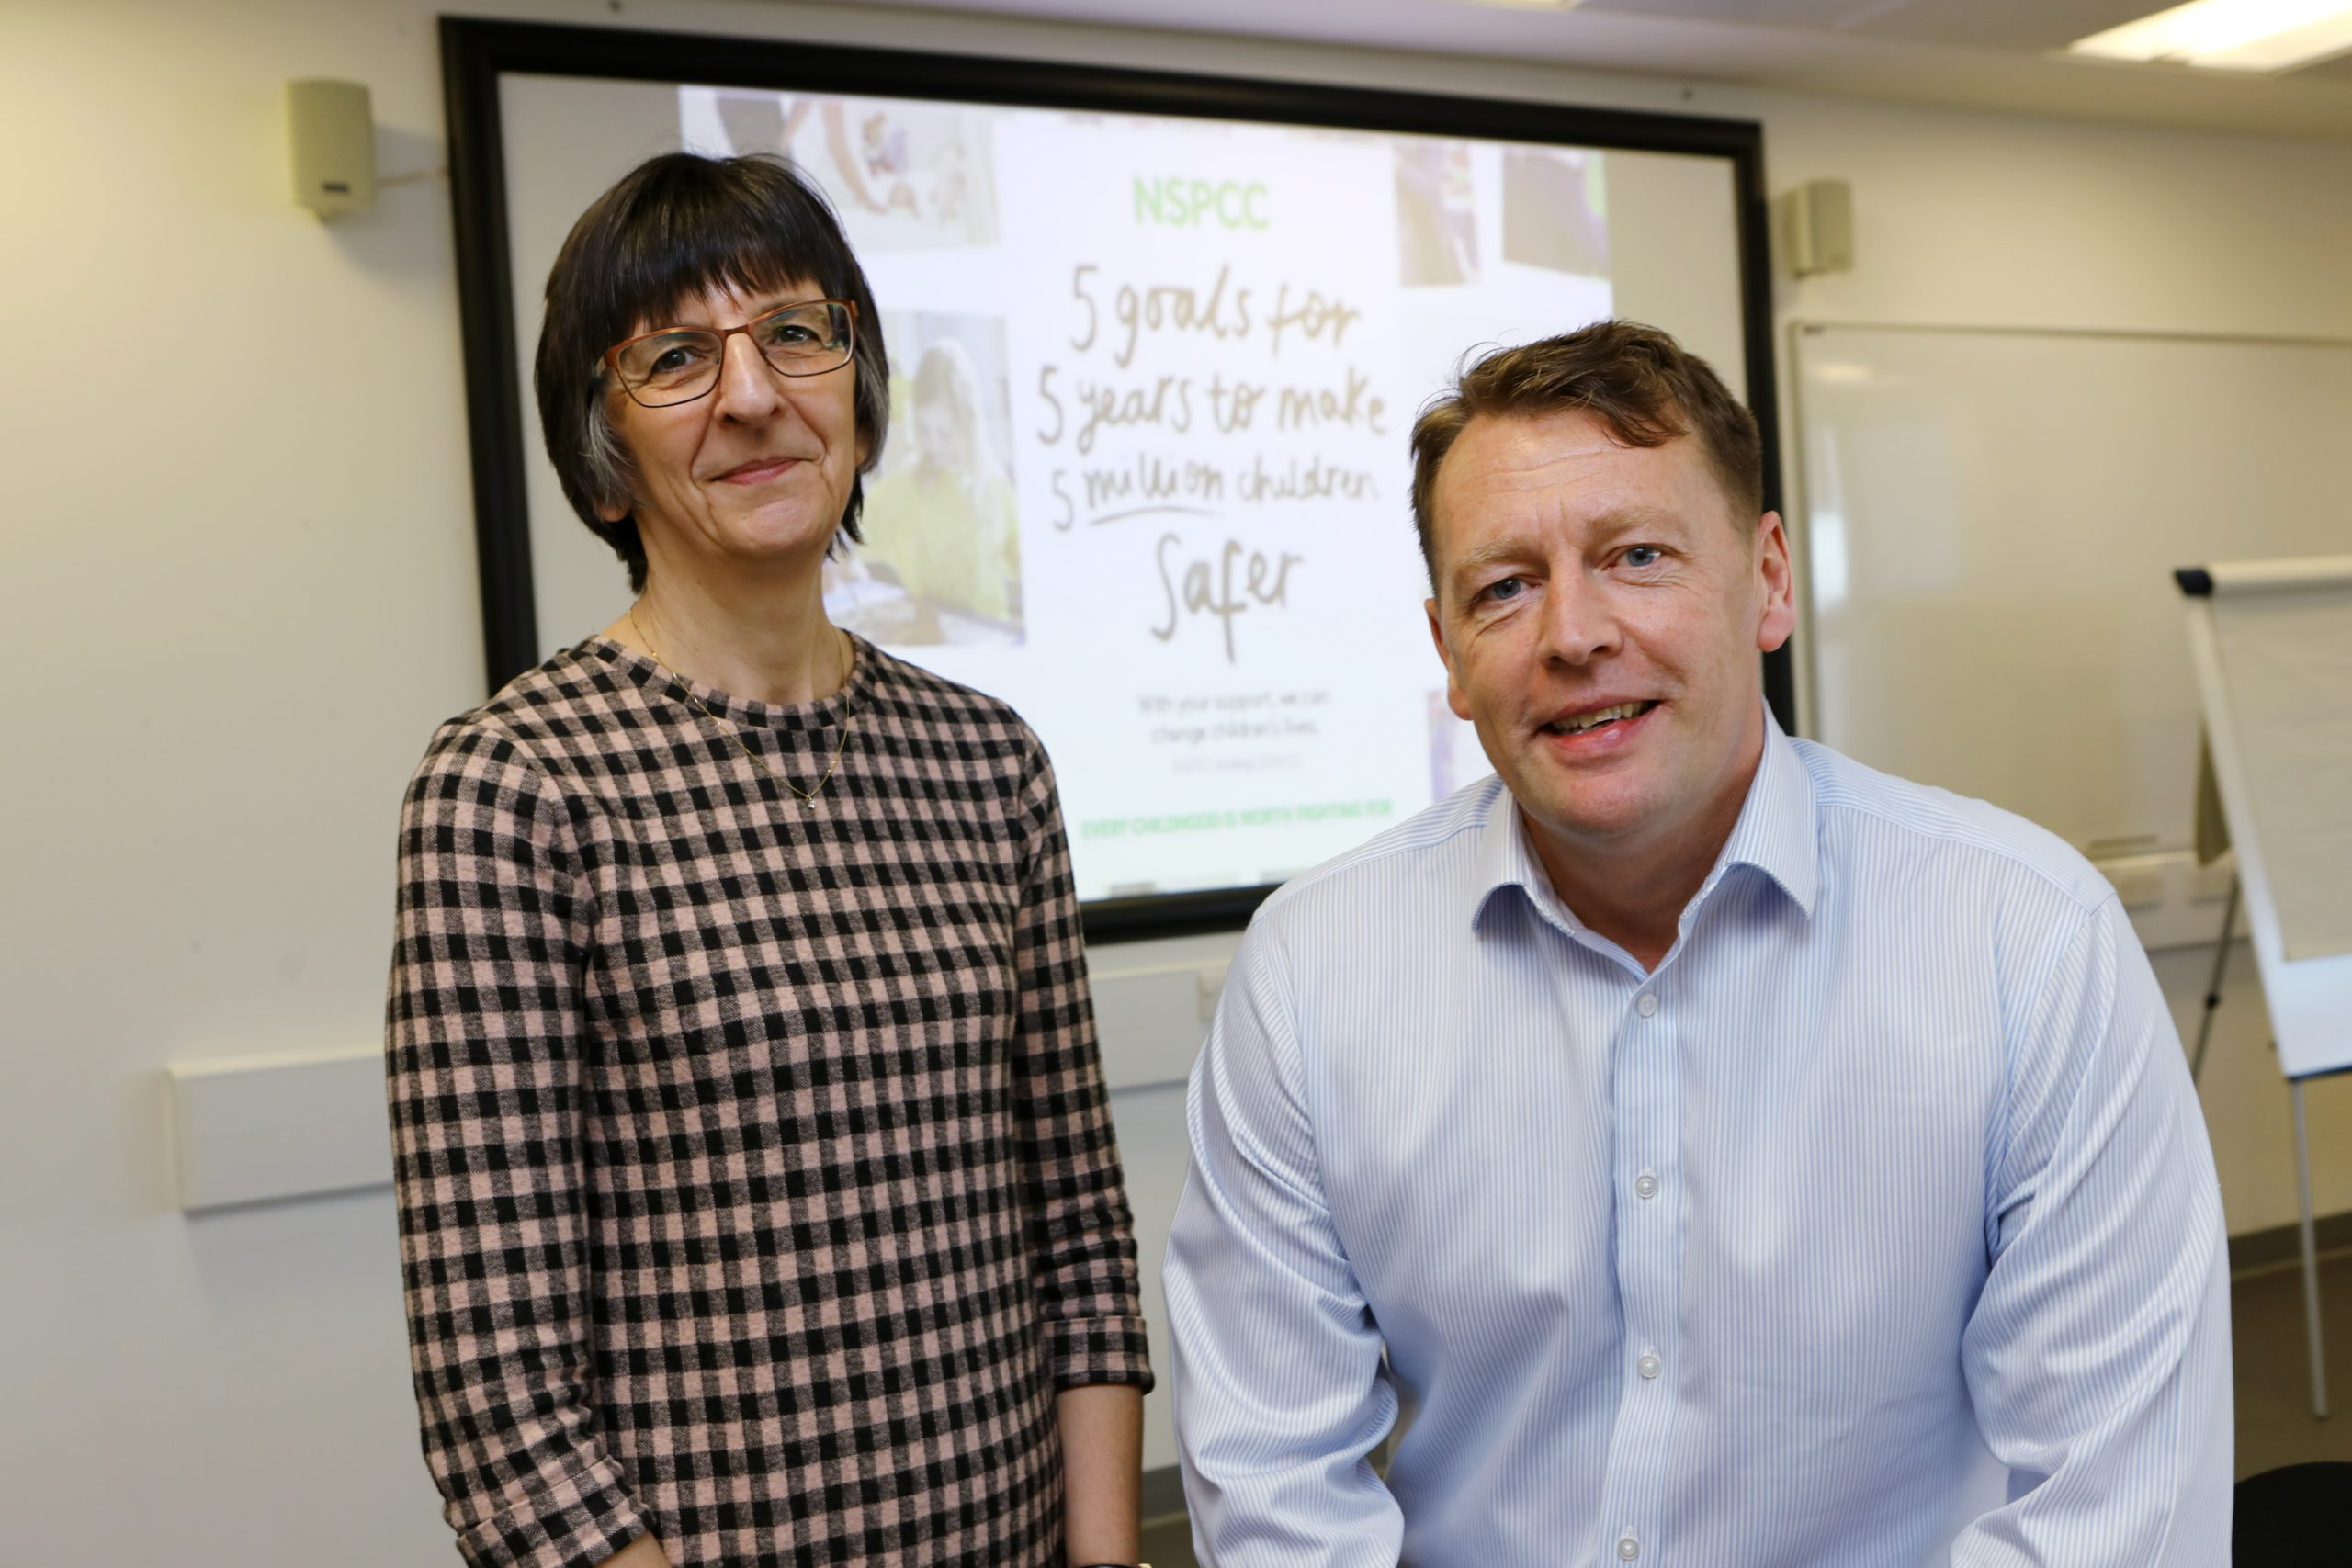 NSPCC schools service co-ordinator Enola Butler and service manager Alan Stewart spoke to the Dundee University conference.